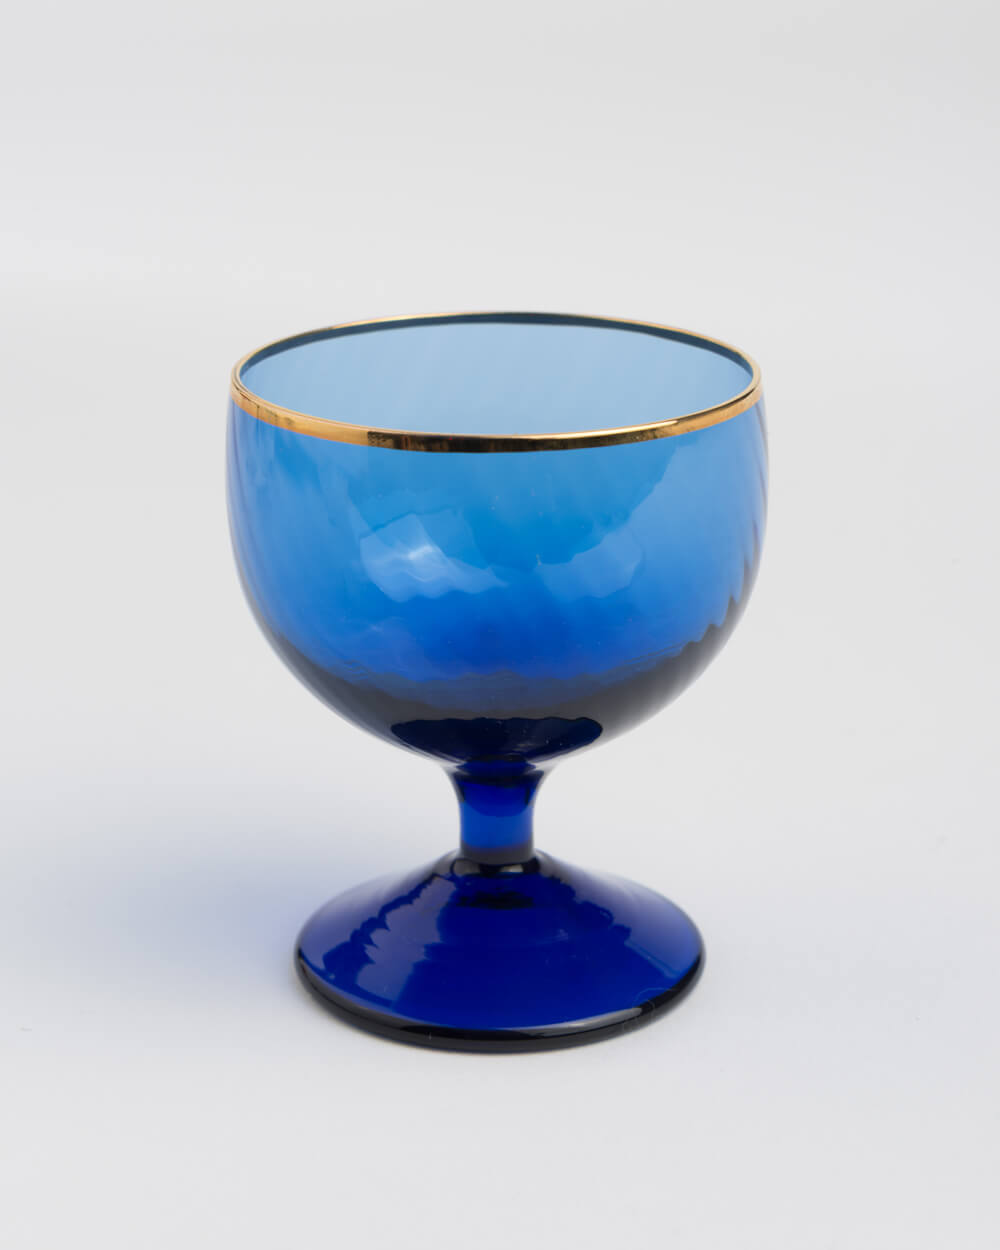 Hand-Made Crystal Gold-Lined Blue